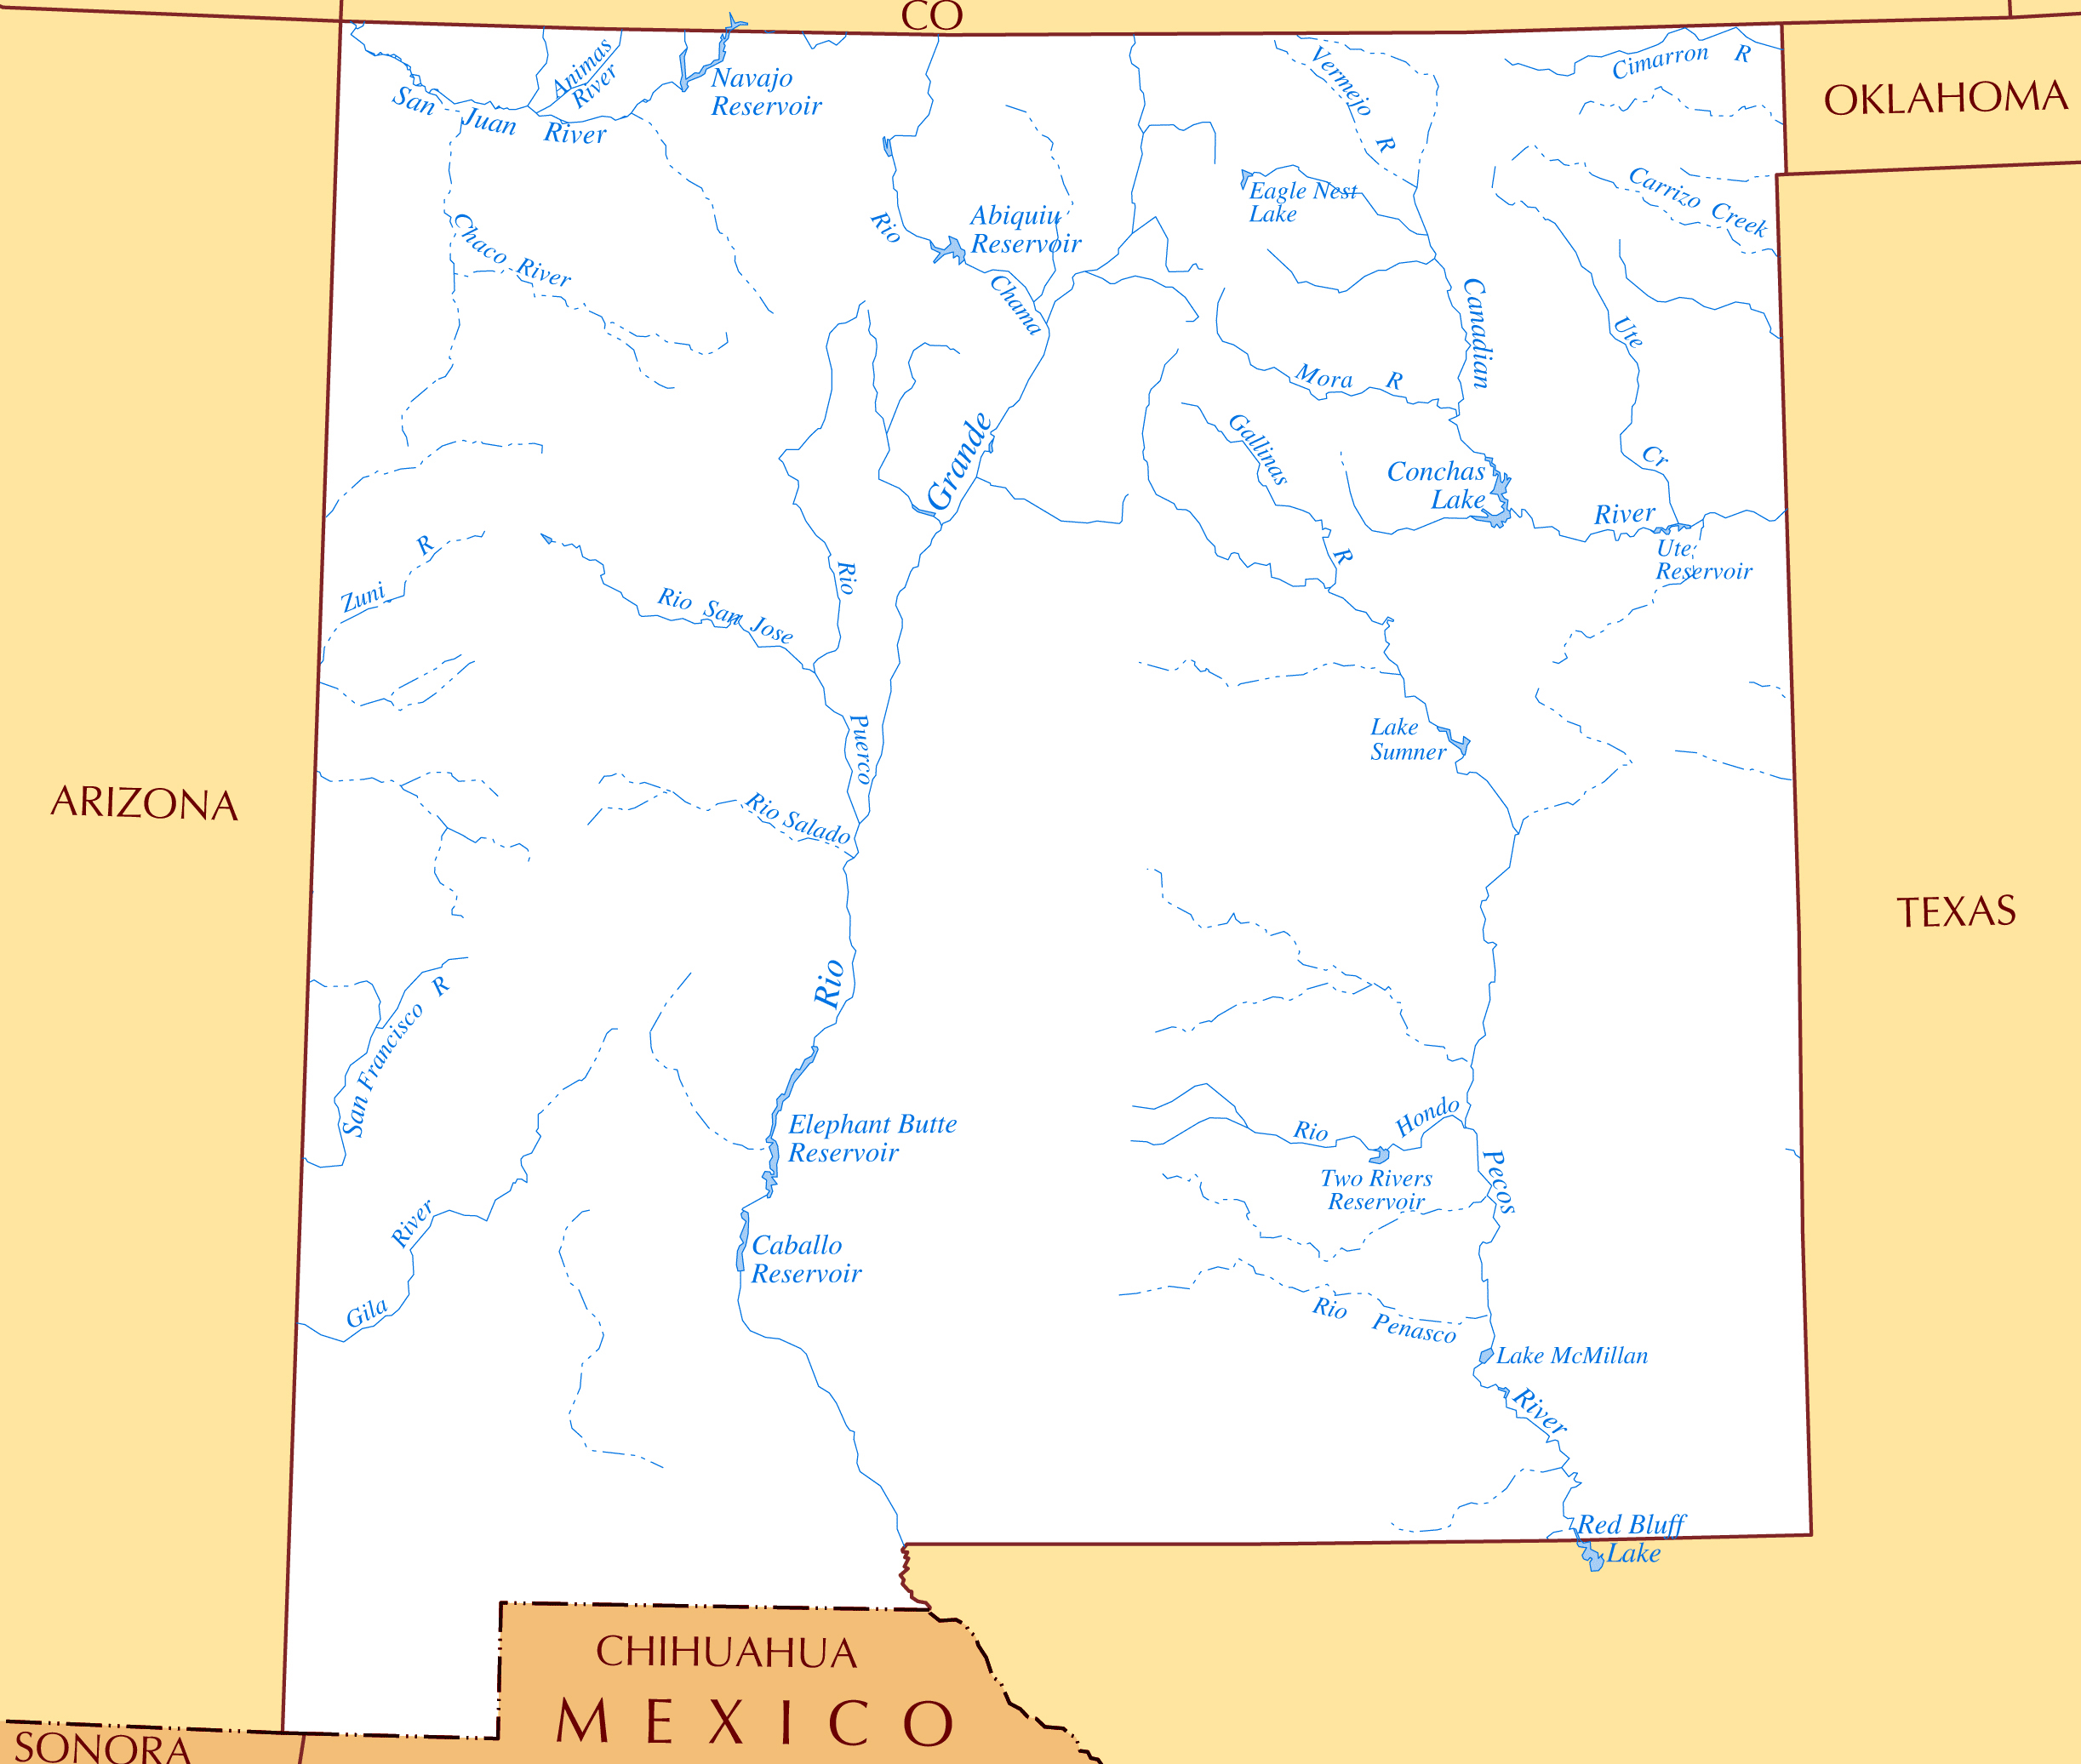 Large rivers and lakes map of New Mexico state | New Mexico ...